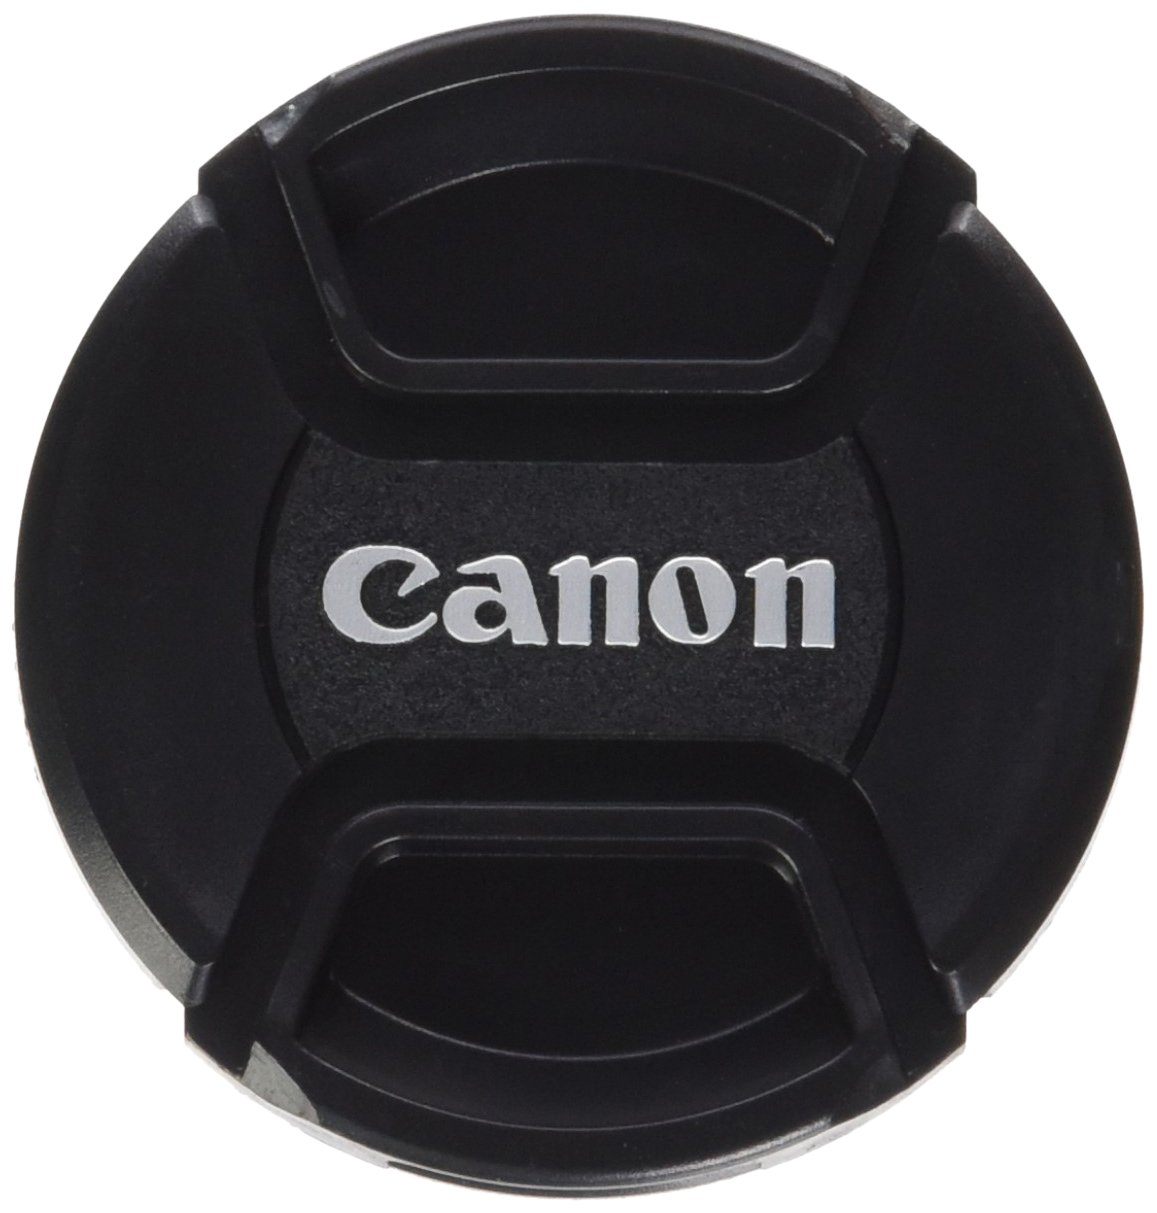 Generic 58mm Lens Cap For Canon Replaces E-58 II - Black - 58U by Generic (Image #1)